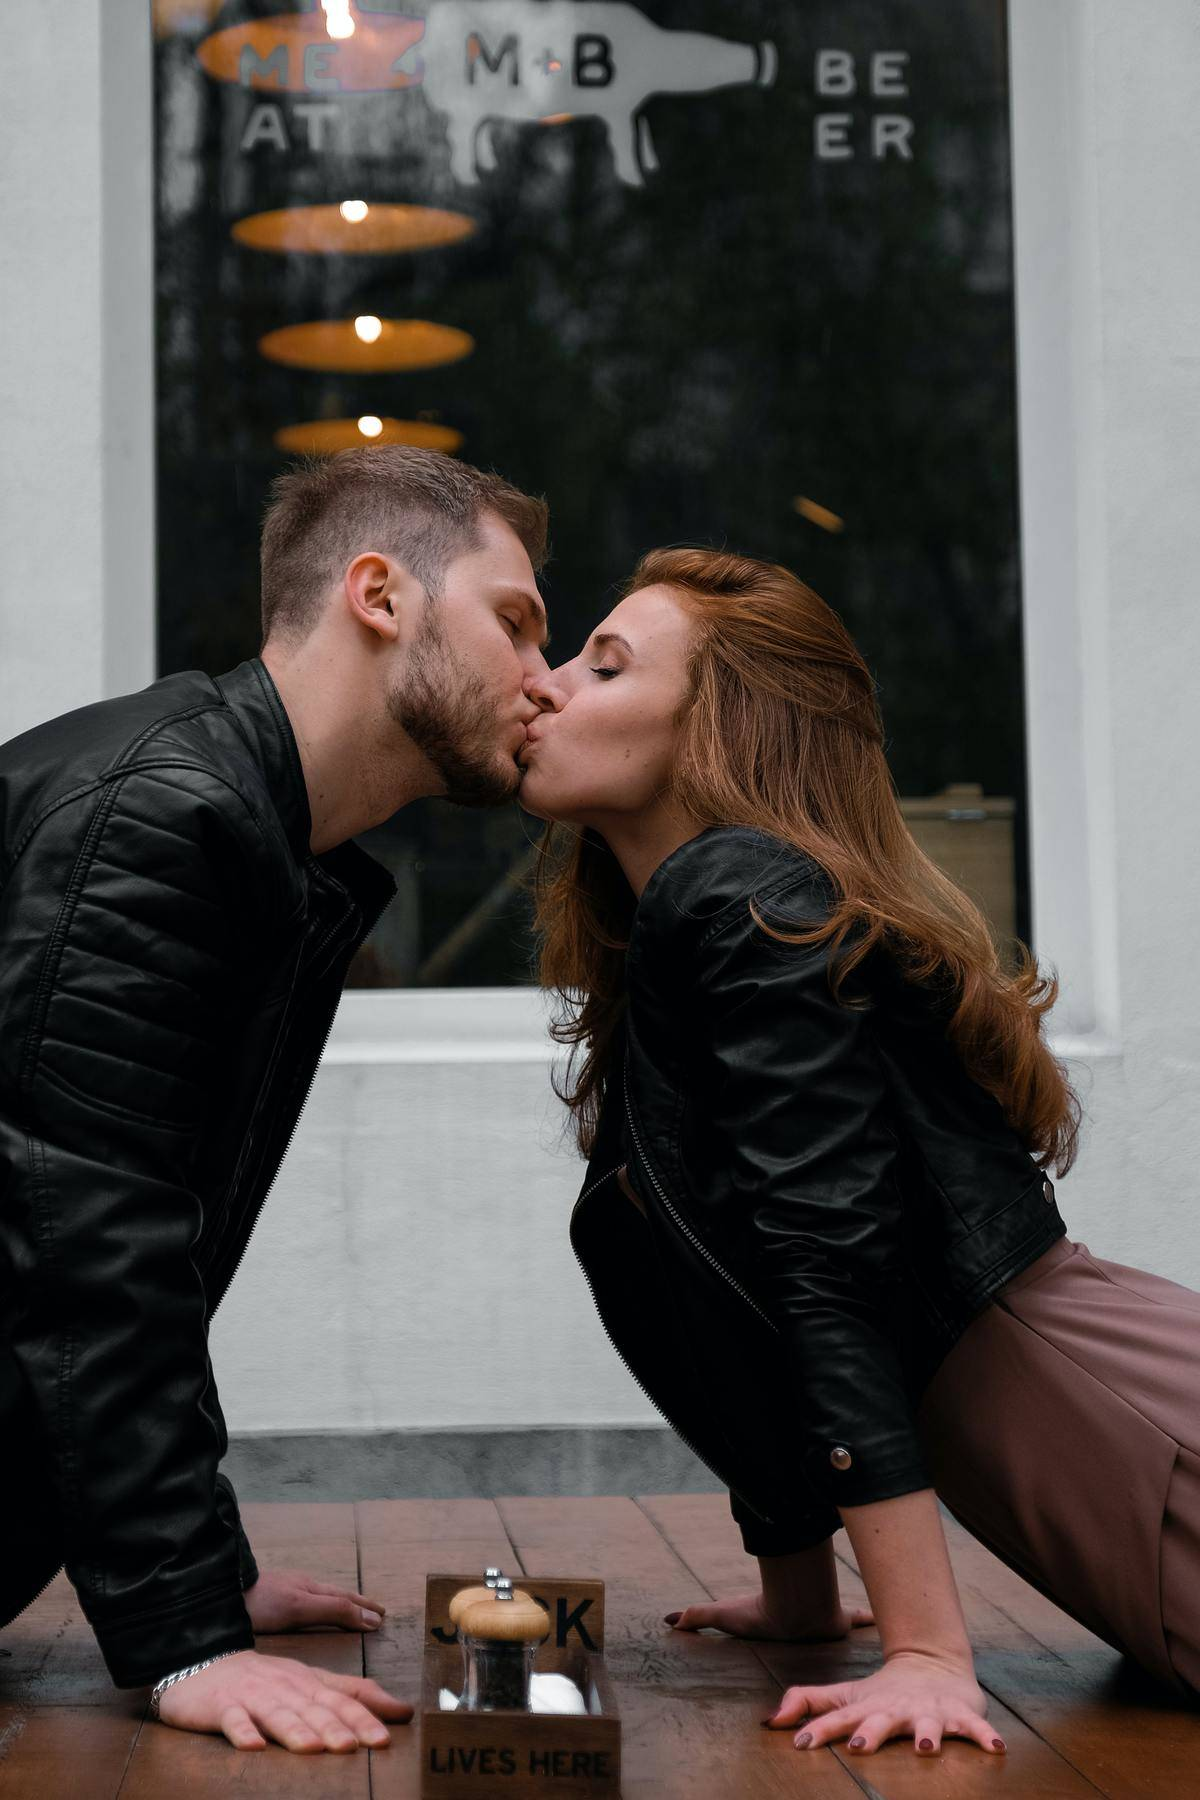 couple leaning over a table giving a kiss